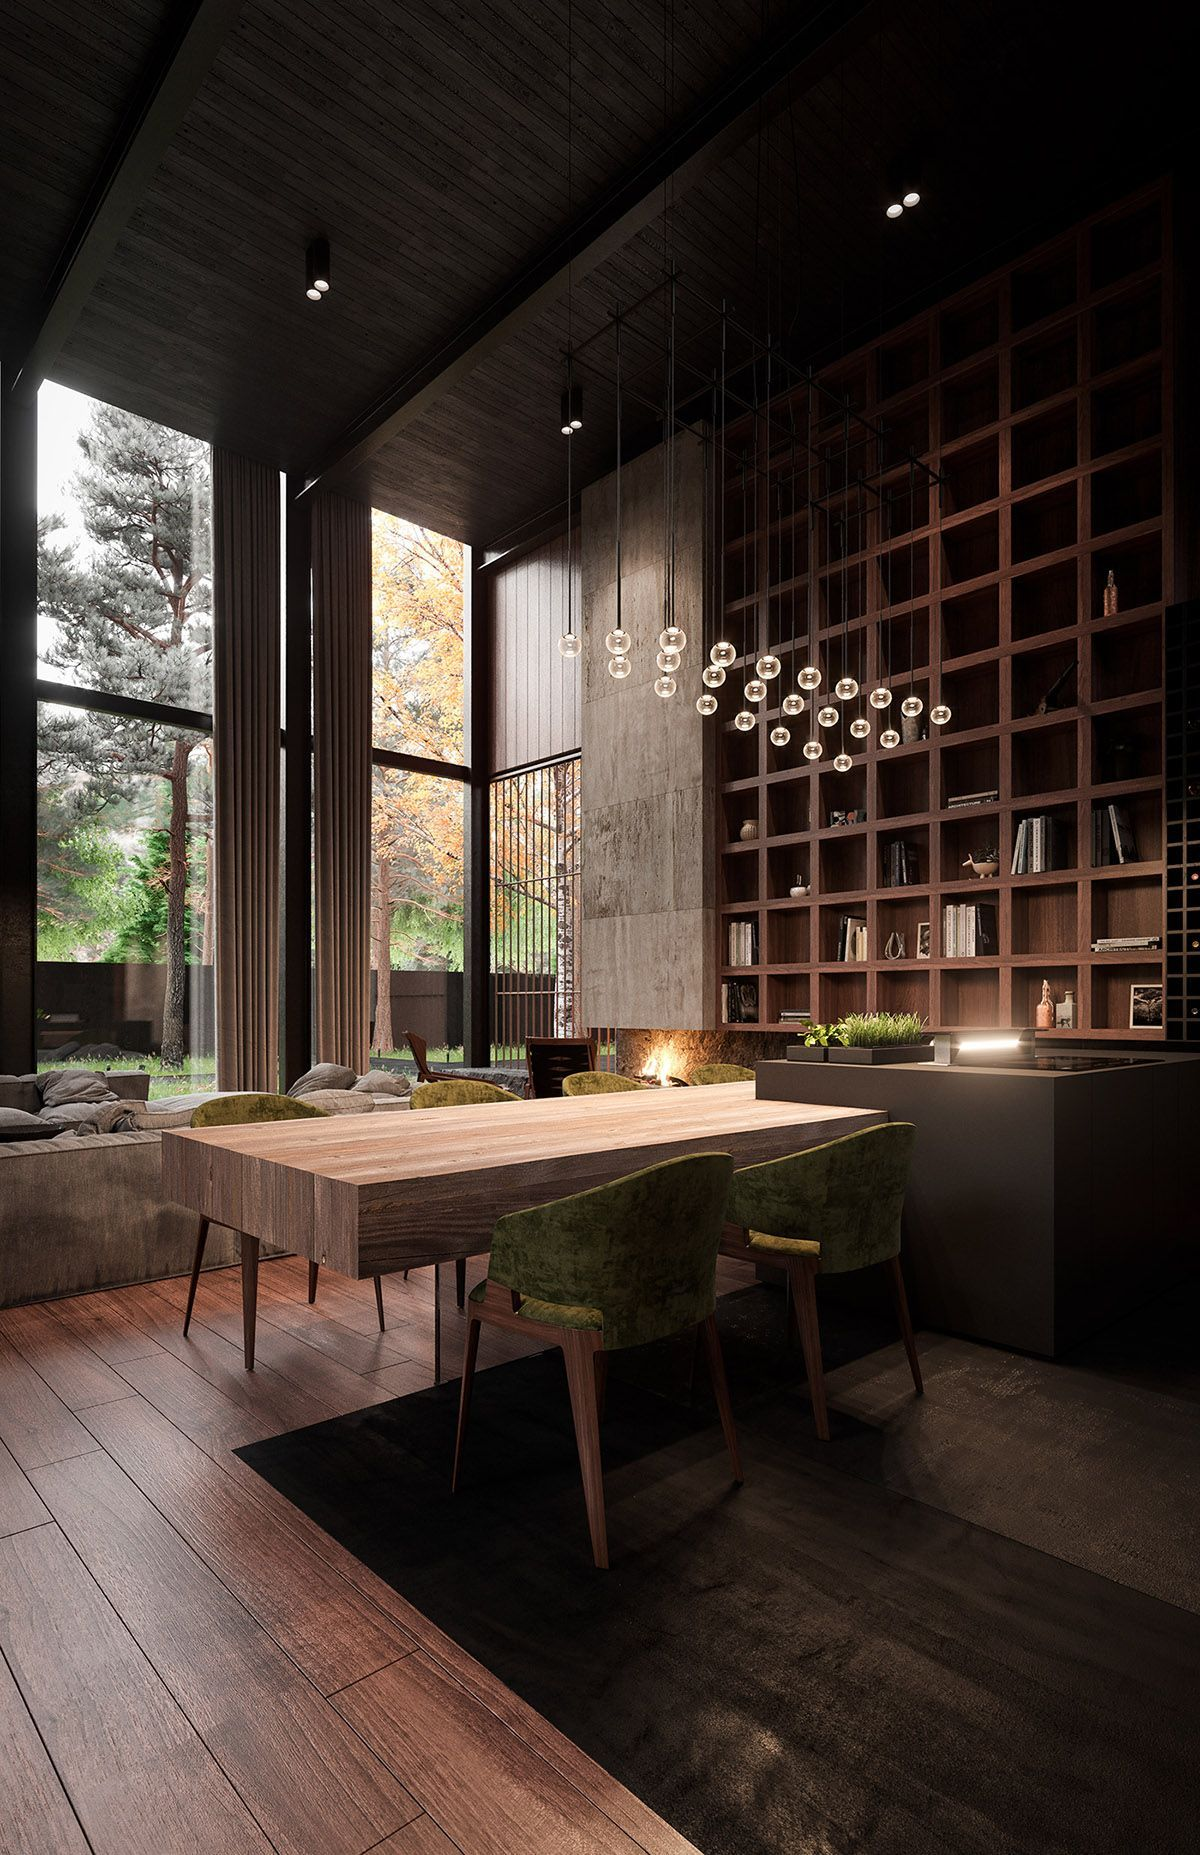 Rich & Exquisite Modern Rustic Home Interior Luxury interior packed with high-end home design inspiration; find rich wood tone paneling & slatted wall designs, bespoke furniture designs & cool decor ideas. #rustichomes